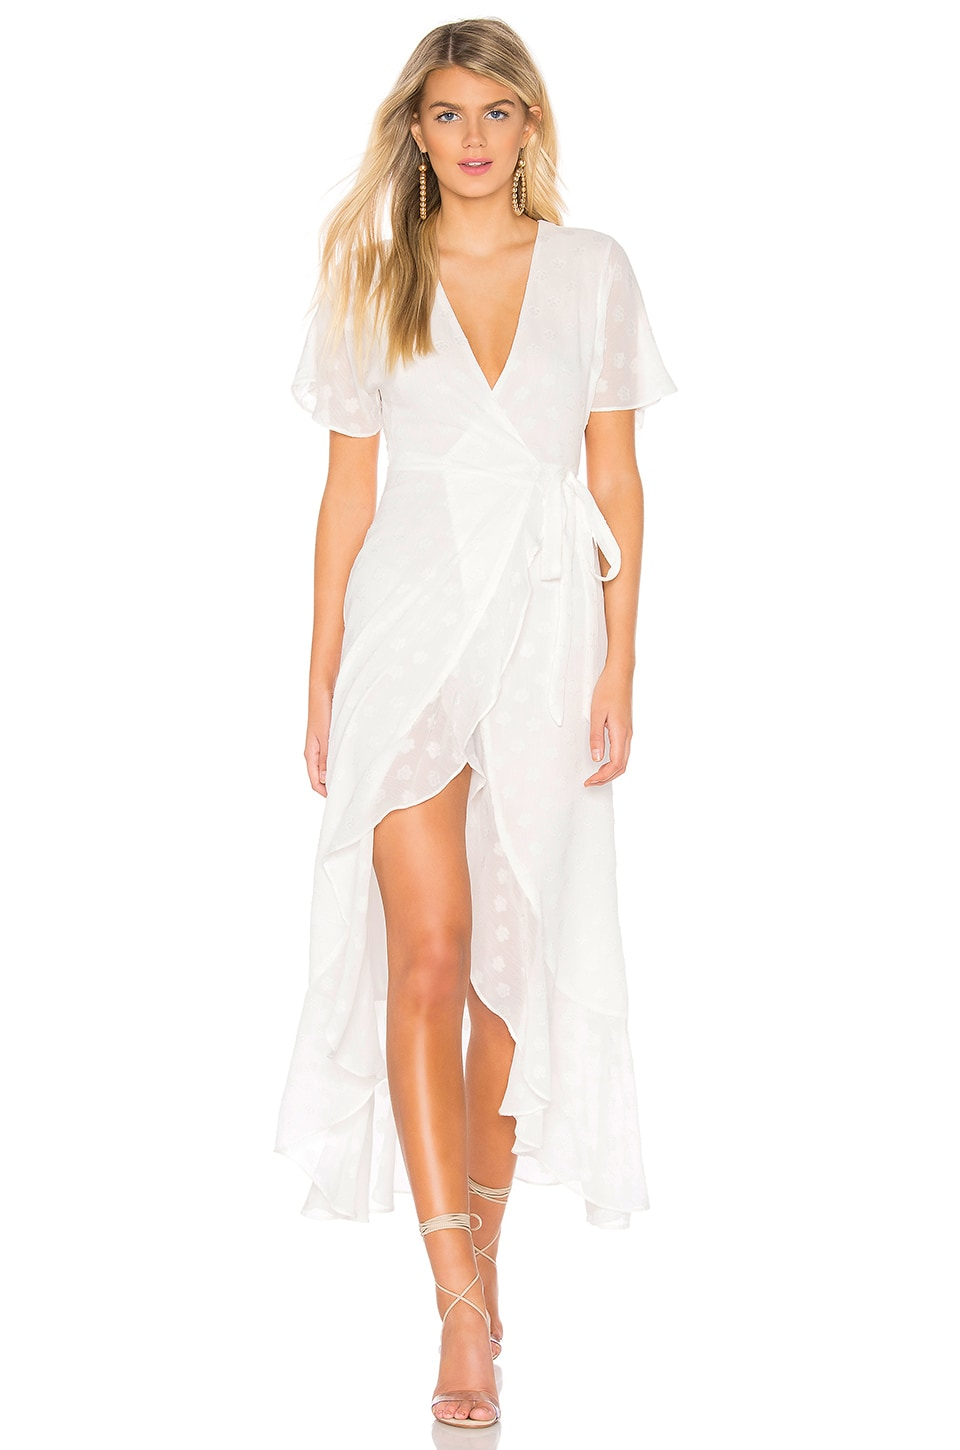 Privacy Please Alaina Maxi Dress in White